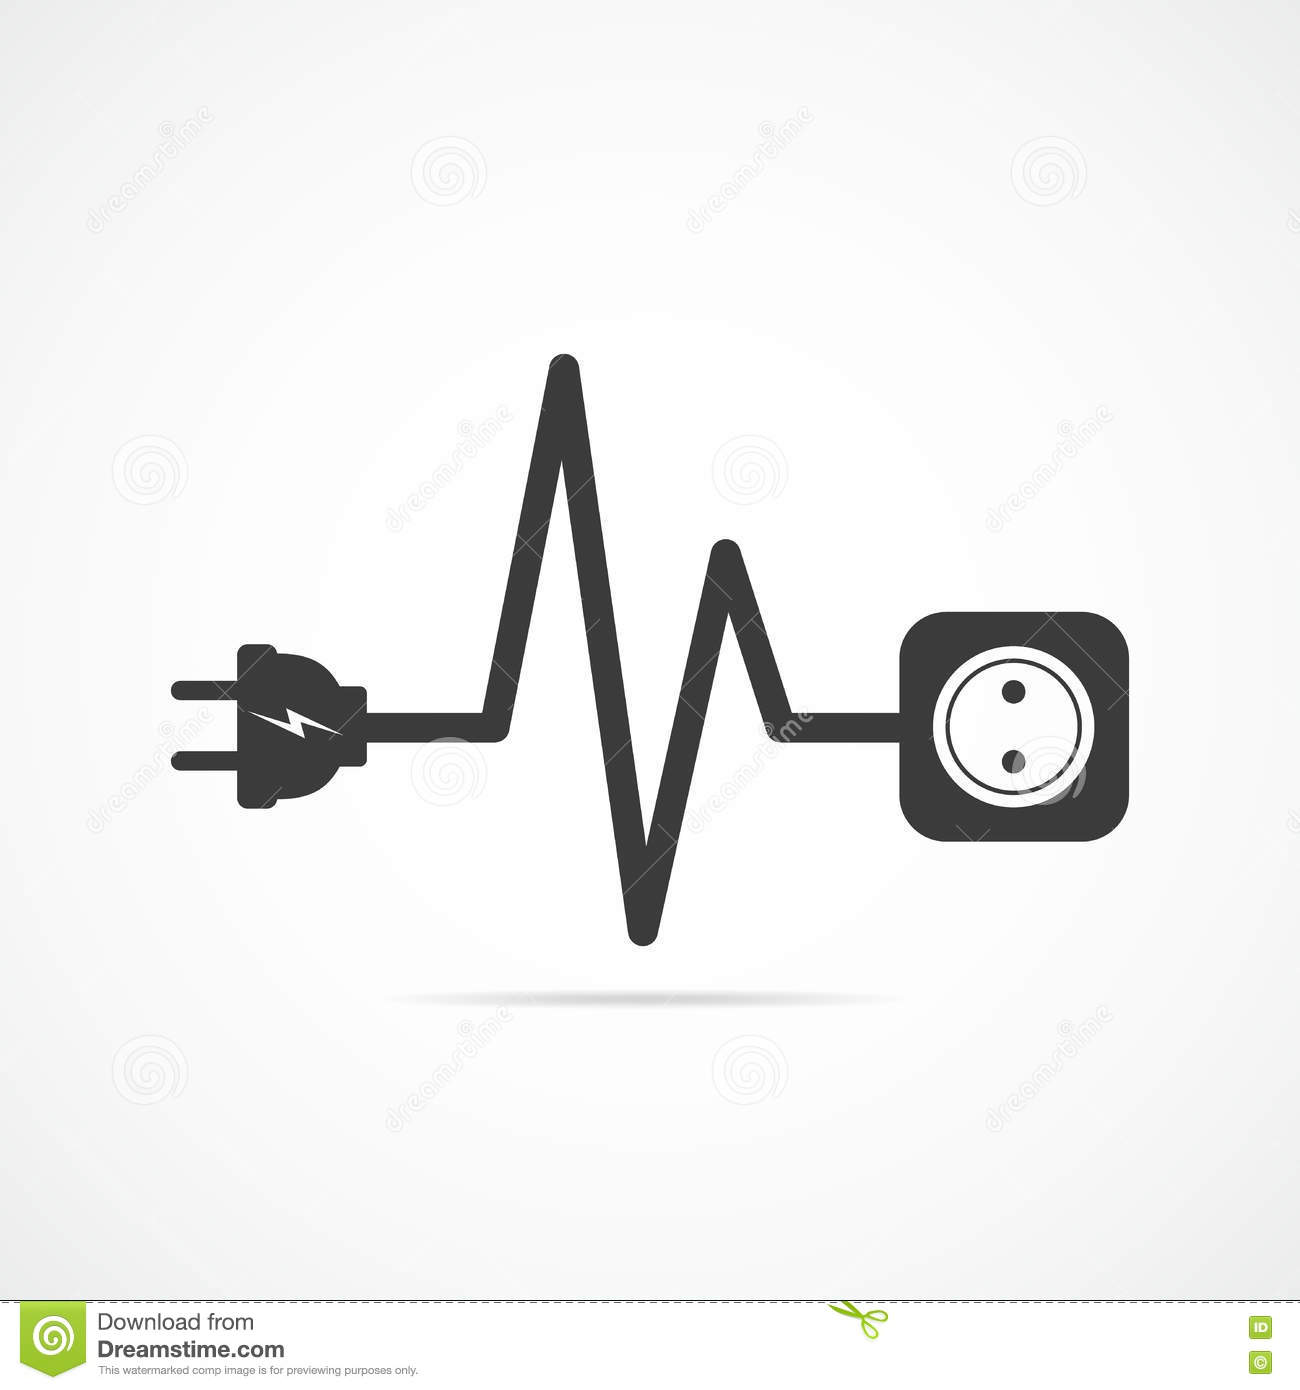 Extension Cord In The Form Of Heartbeat Vector Illustration Stock Wire Diagram